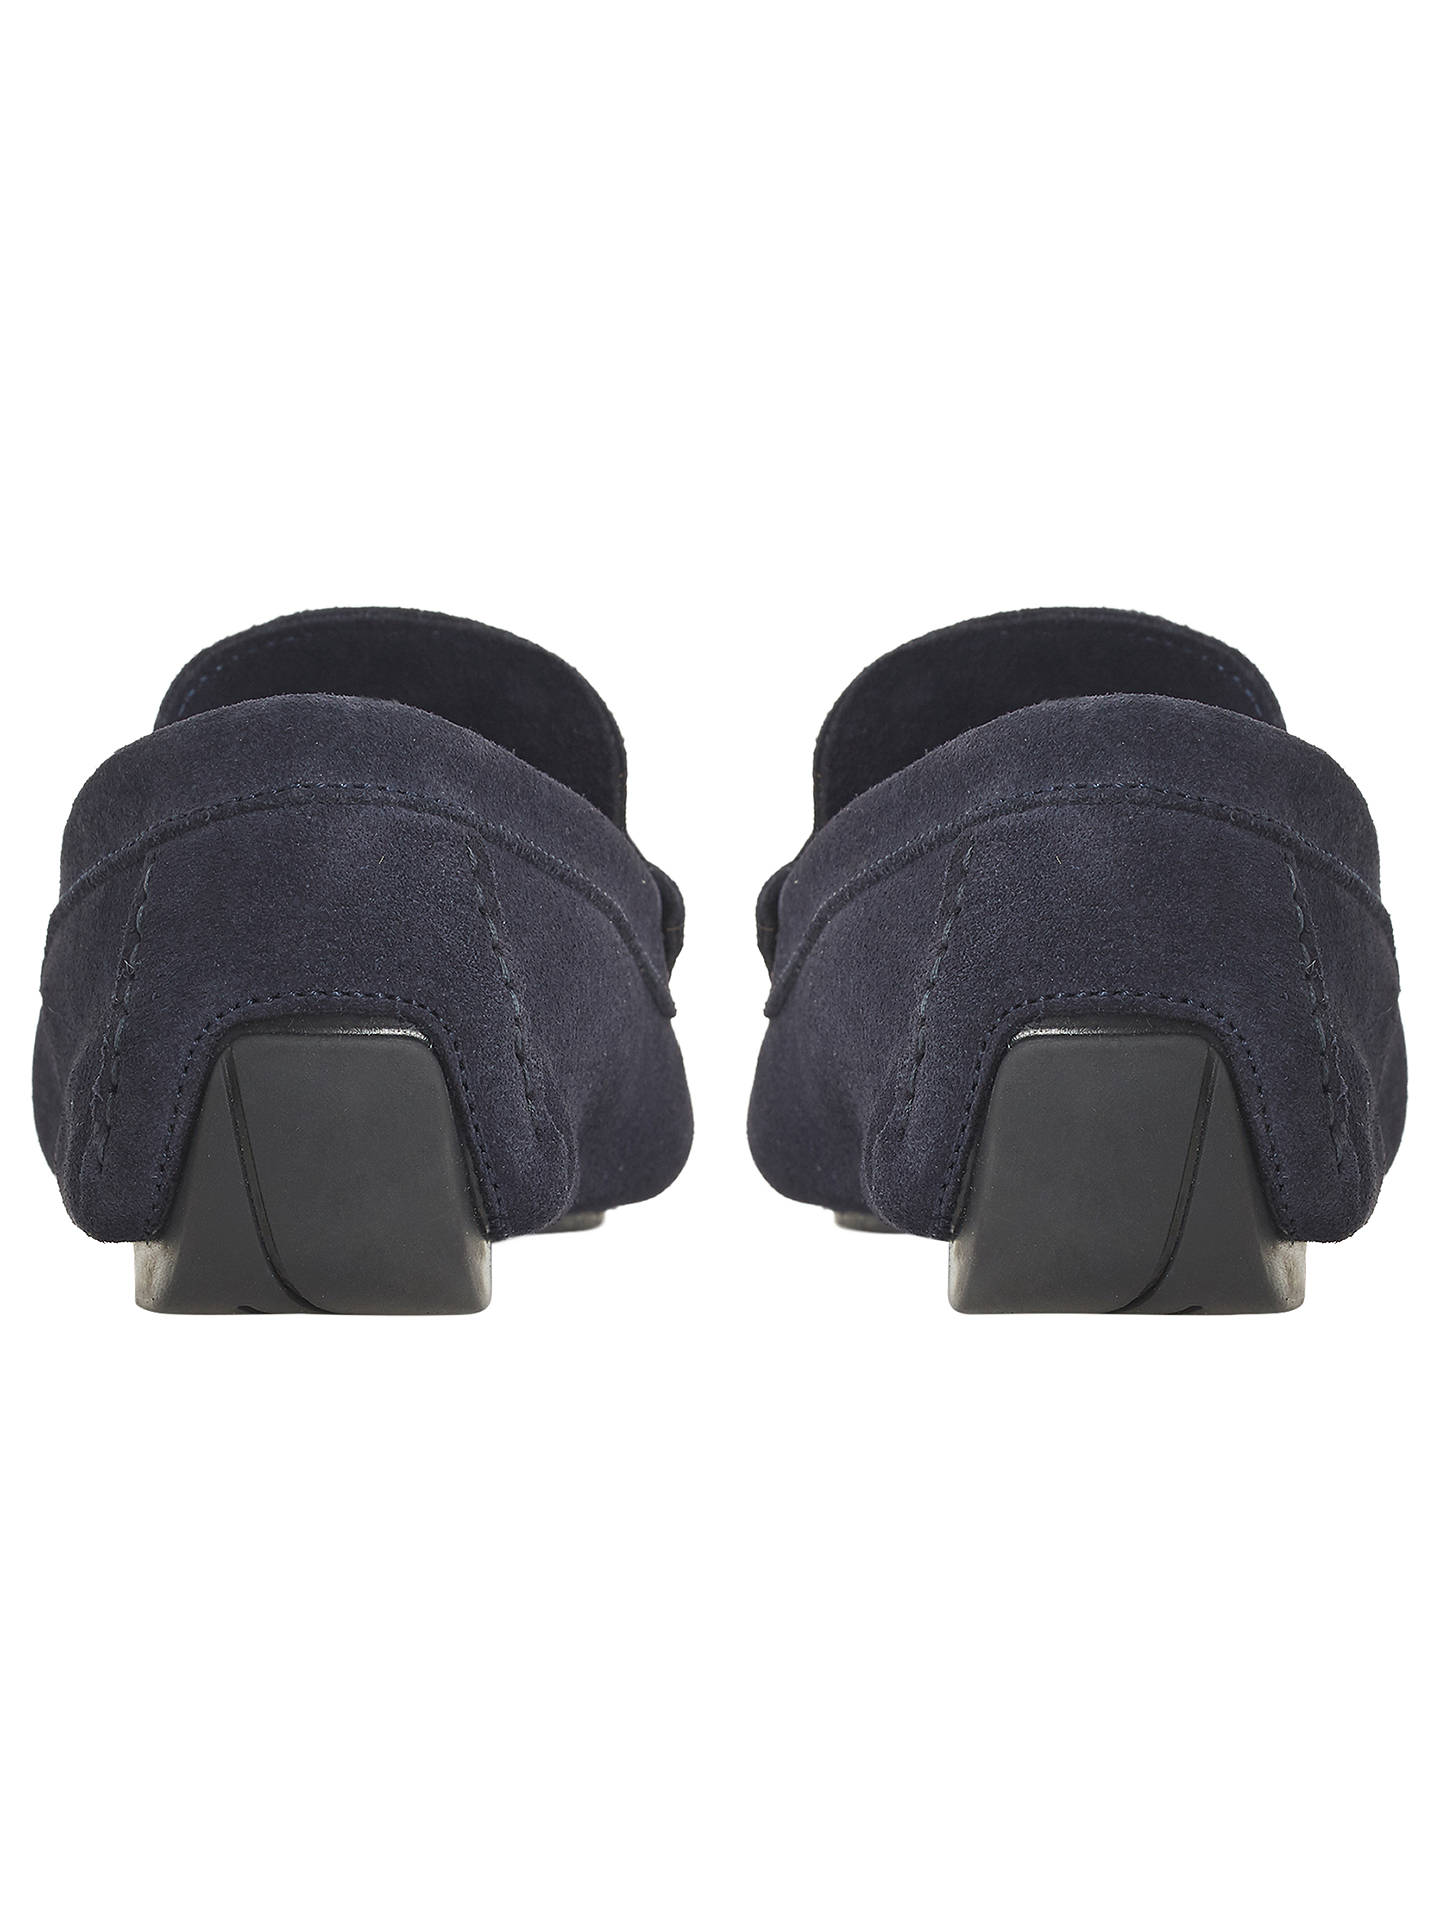 BuyBertie Bandit Knot Driver Loafer, Navy, 7 Online at johnlewis.com